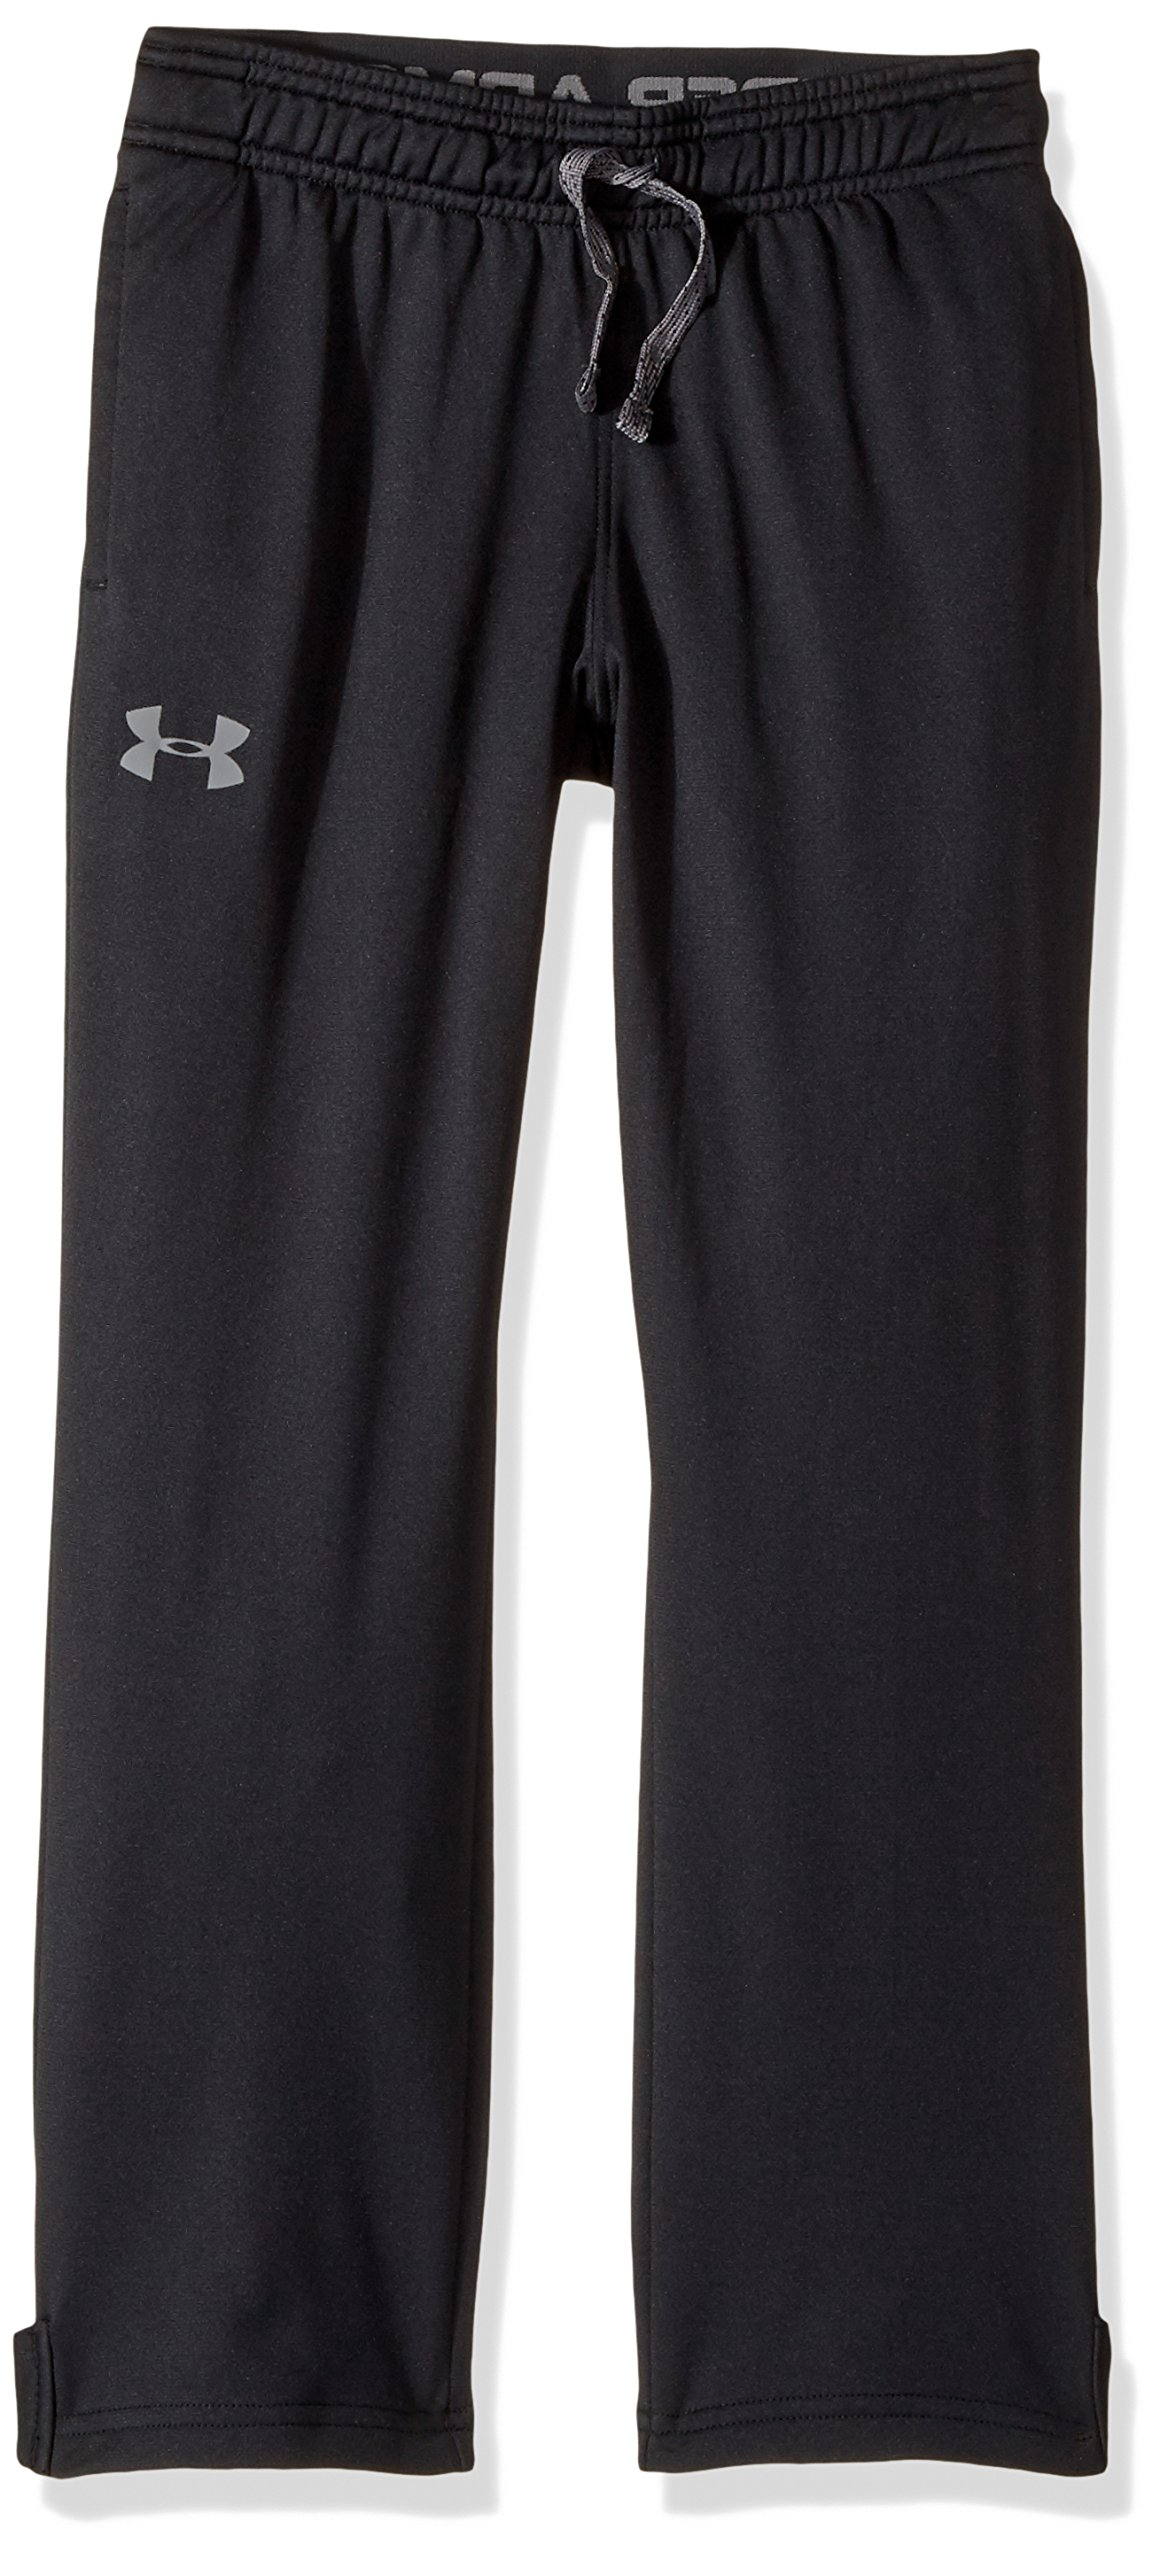 Under Armour Boys' Brawler Slim Pants,Black (001)/Graphite, Youth Medium